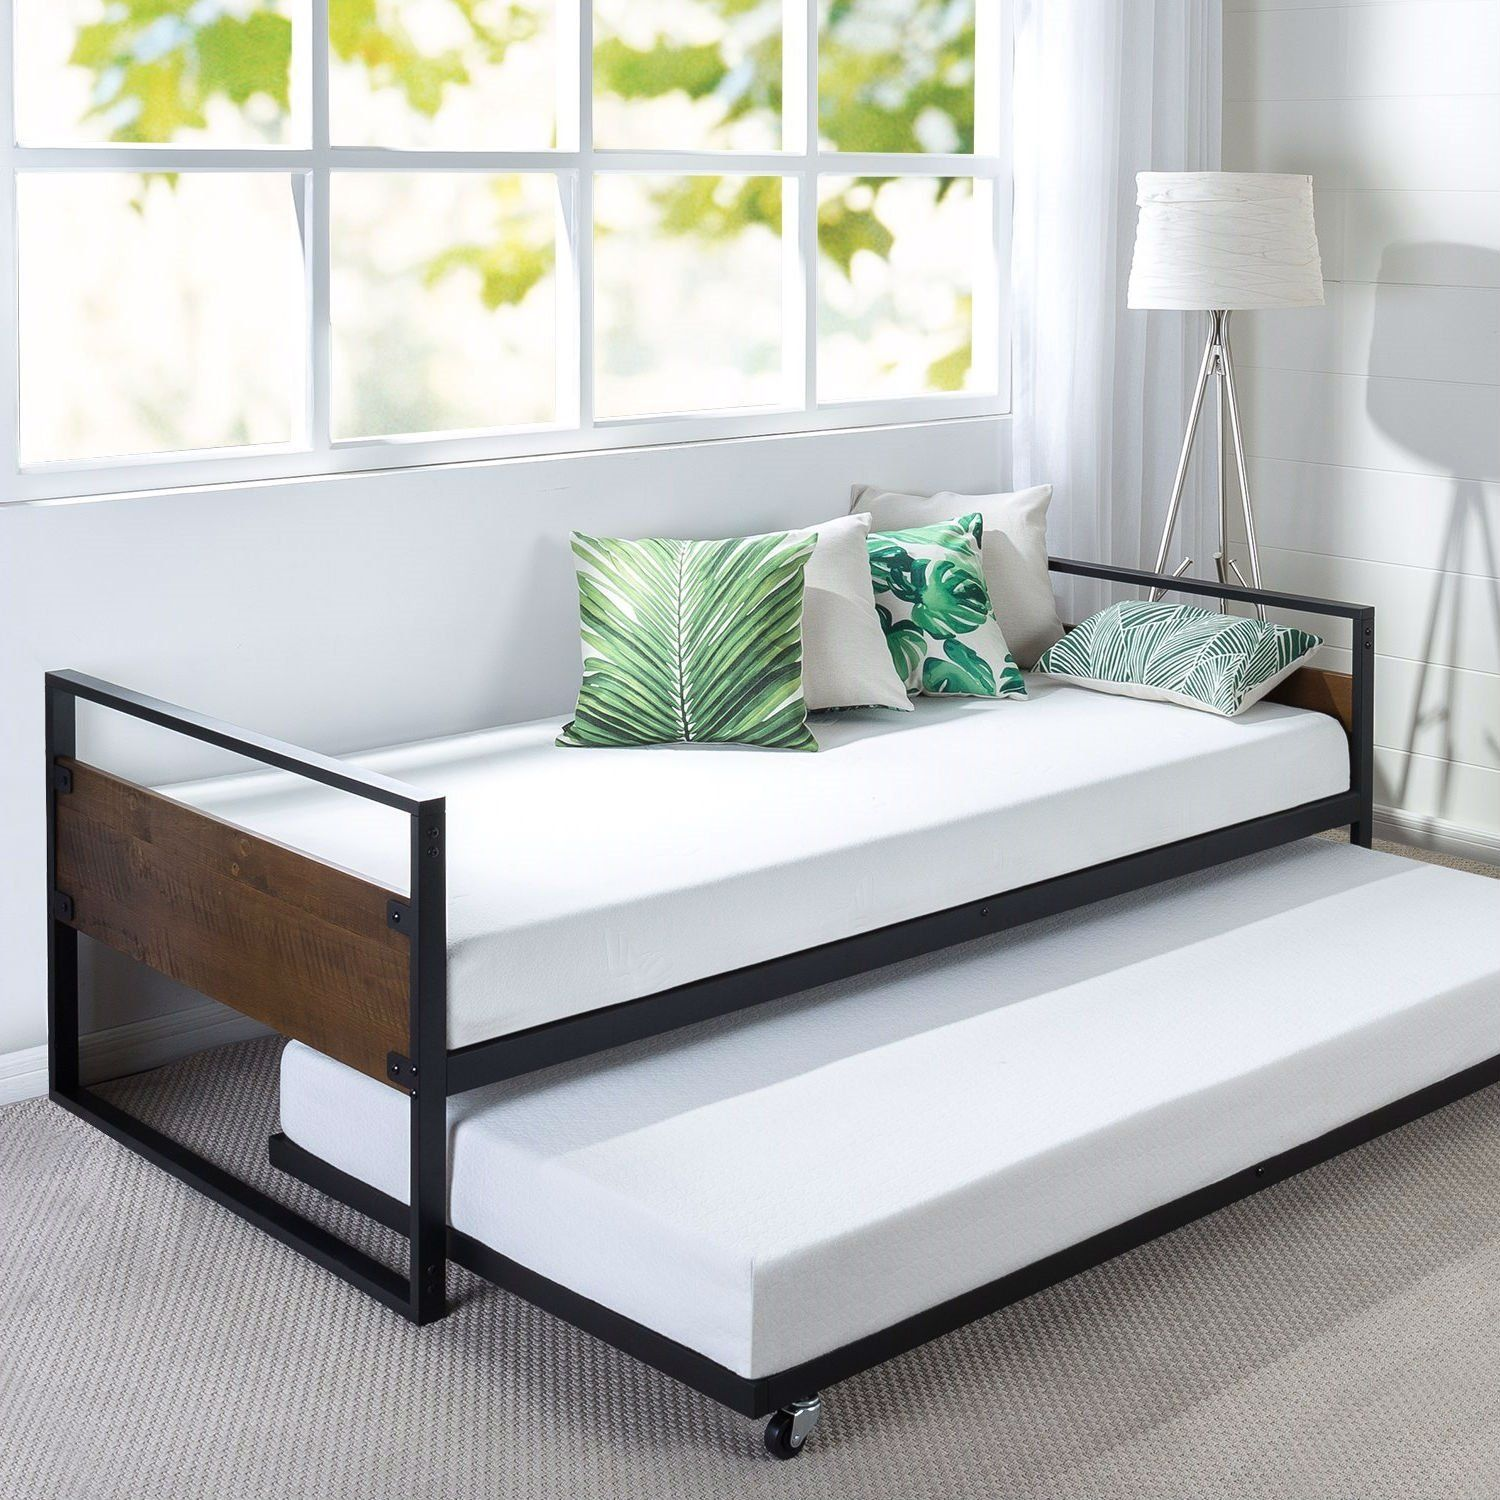 Twin Size Metal Wood Daybed Frame With Roll Out Trundle Bed In 2021 Twin Daybed With Trundle Daybed With Trundle Wood Daybed Daybed with trundle with mattress